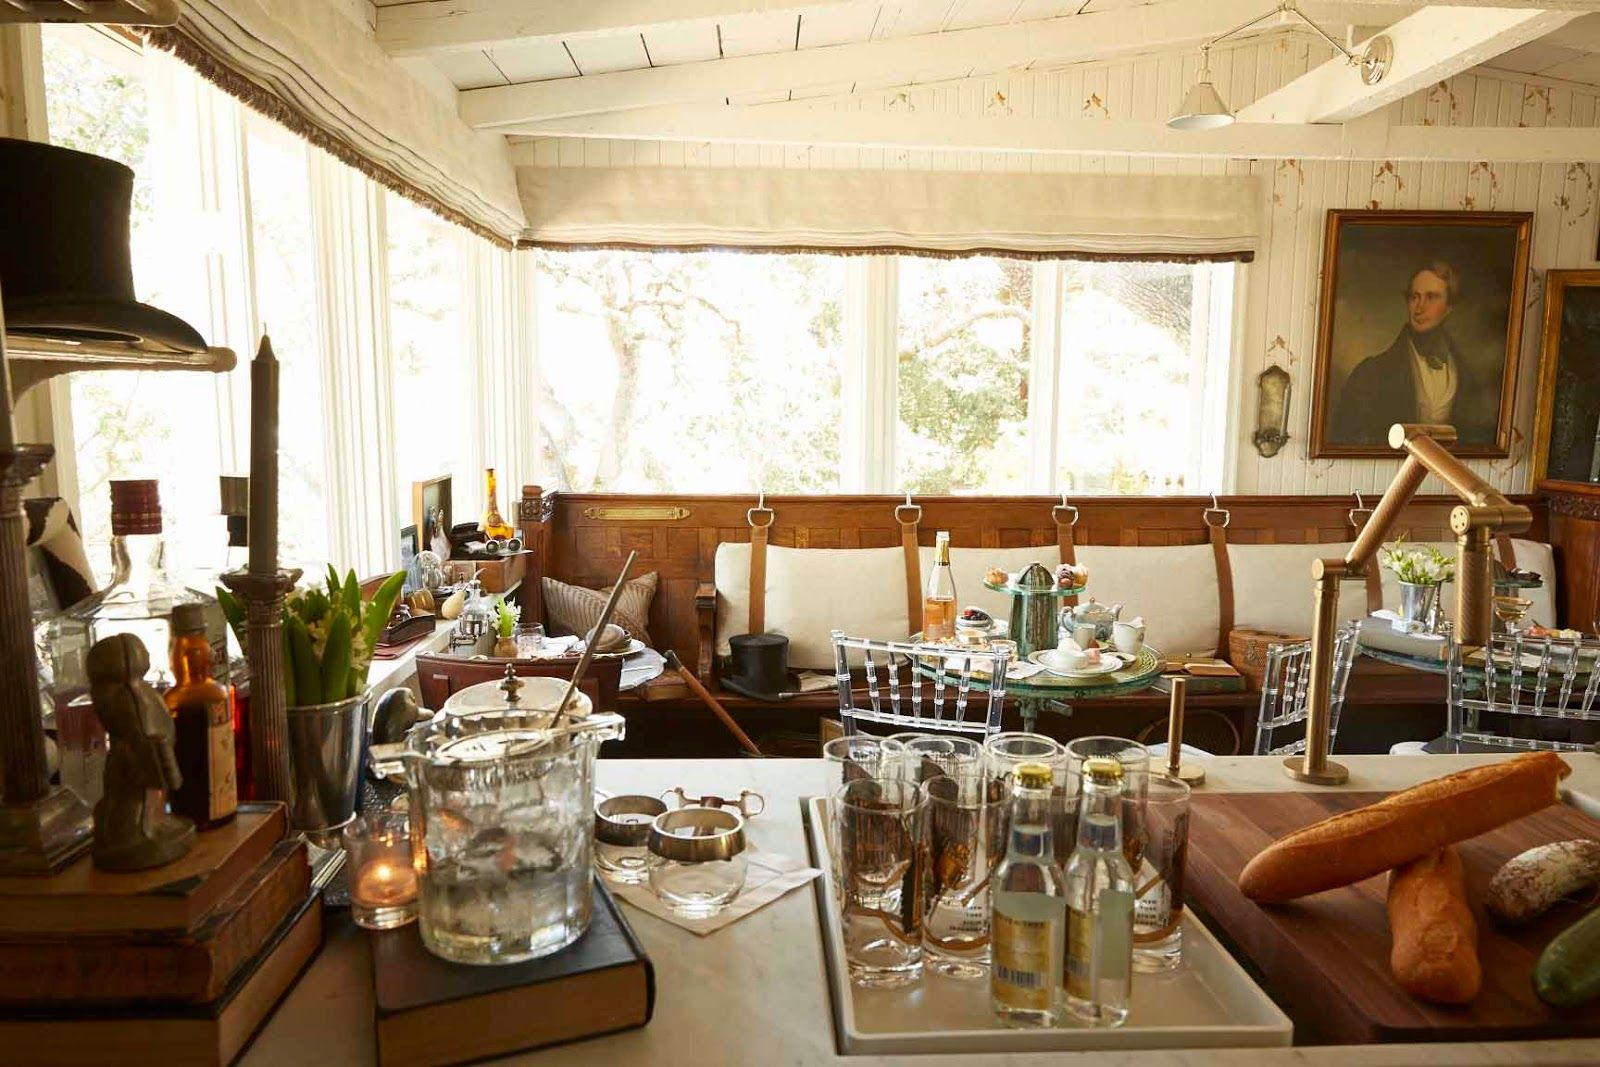 Great The Style Saloniste Positively British San Francisco Interior Designer Jonathan Rachman Transforms A Napa With Salon Style Colonial